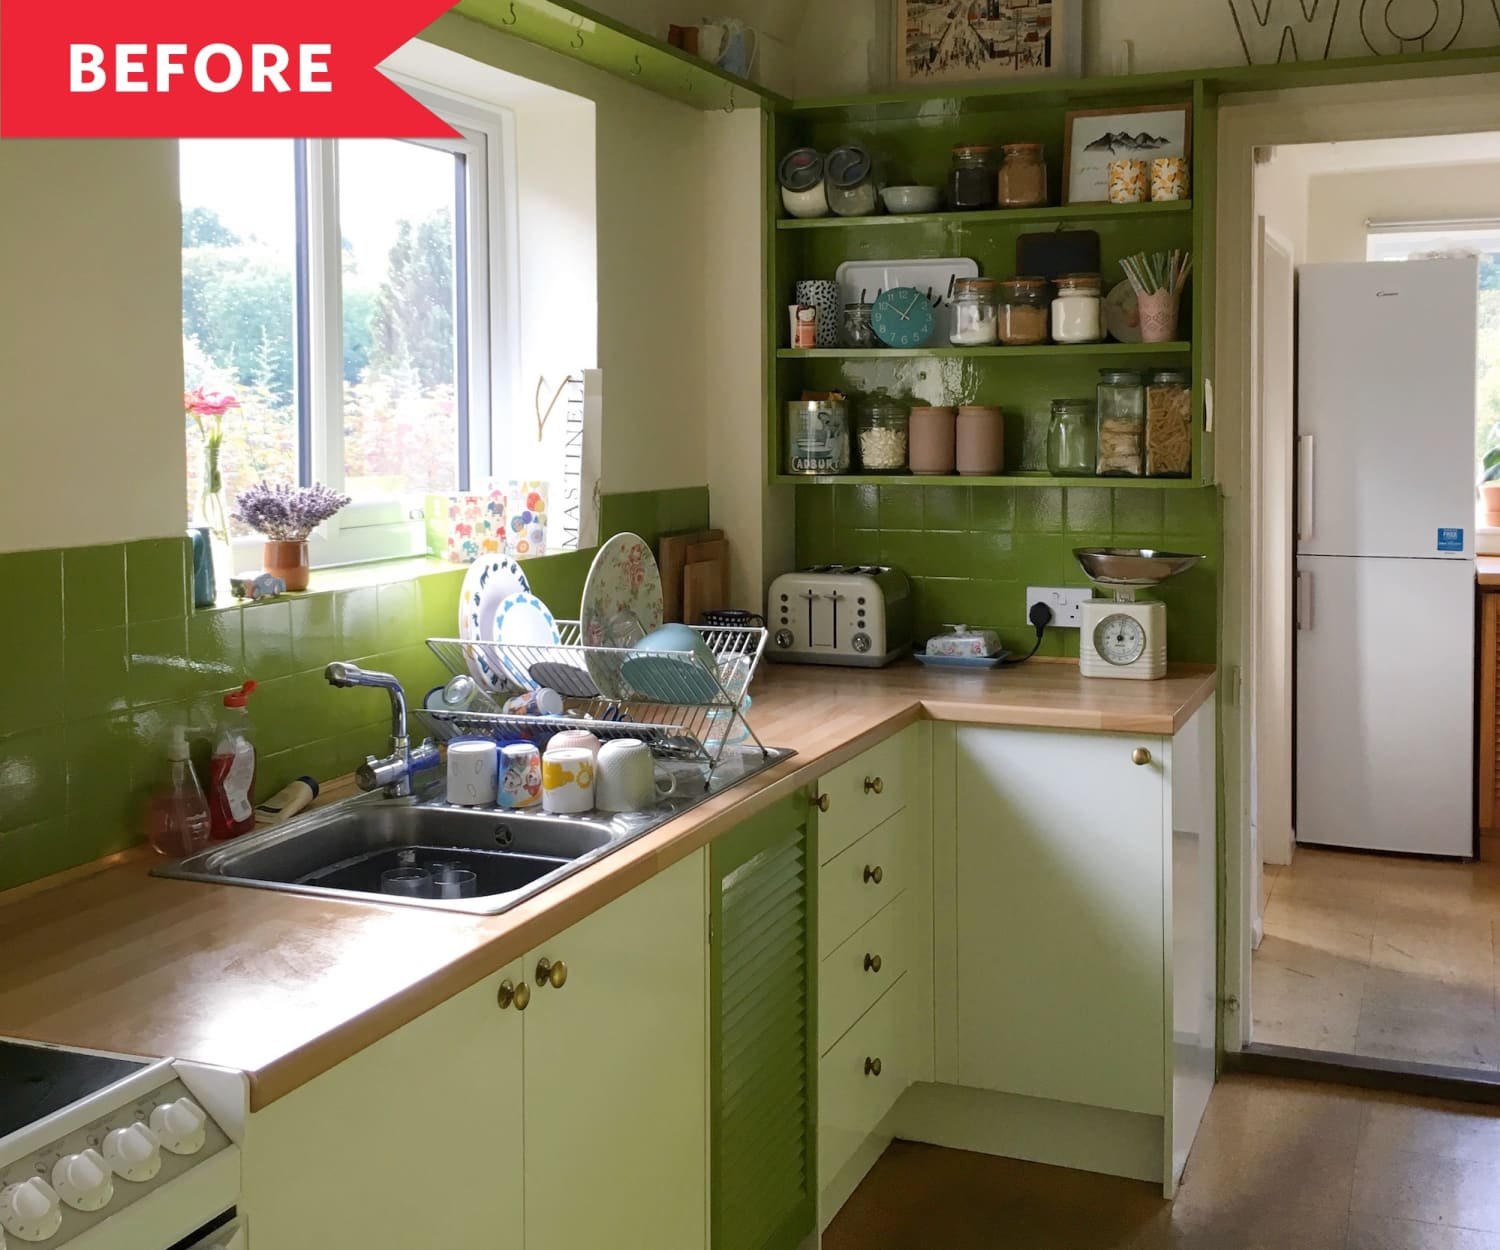 Before and After: A Bright Budget Redo for this Lime Green Kitchen